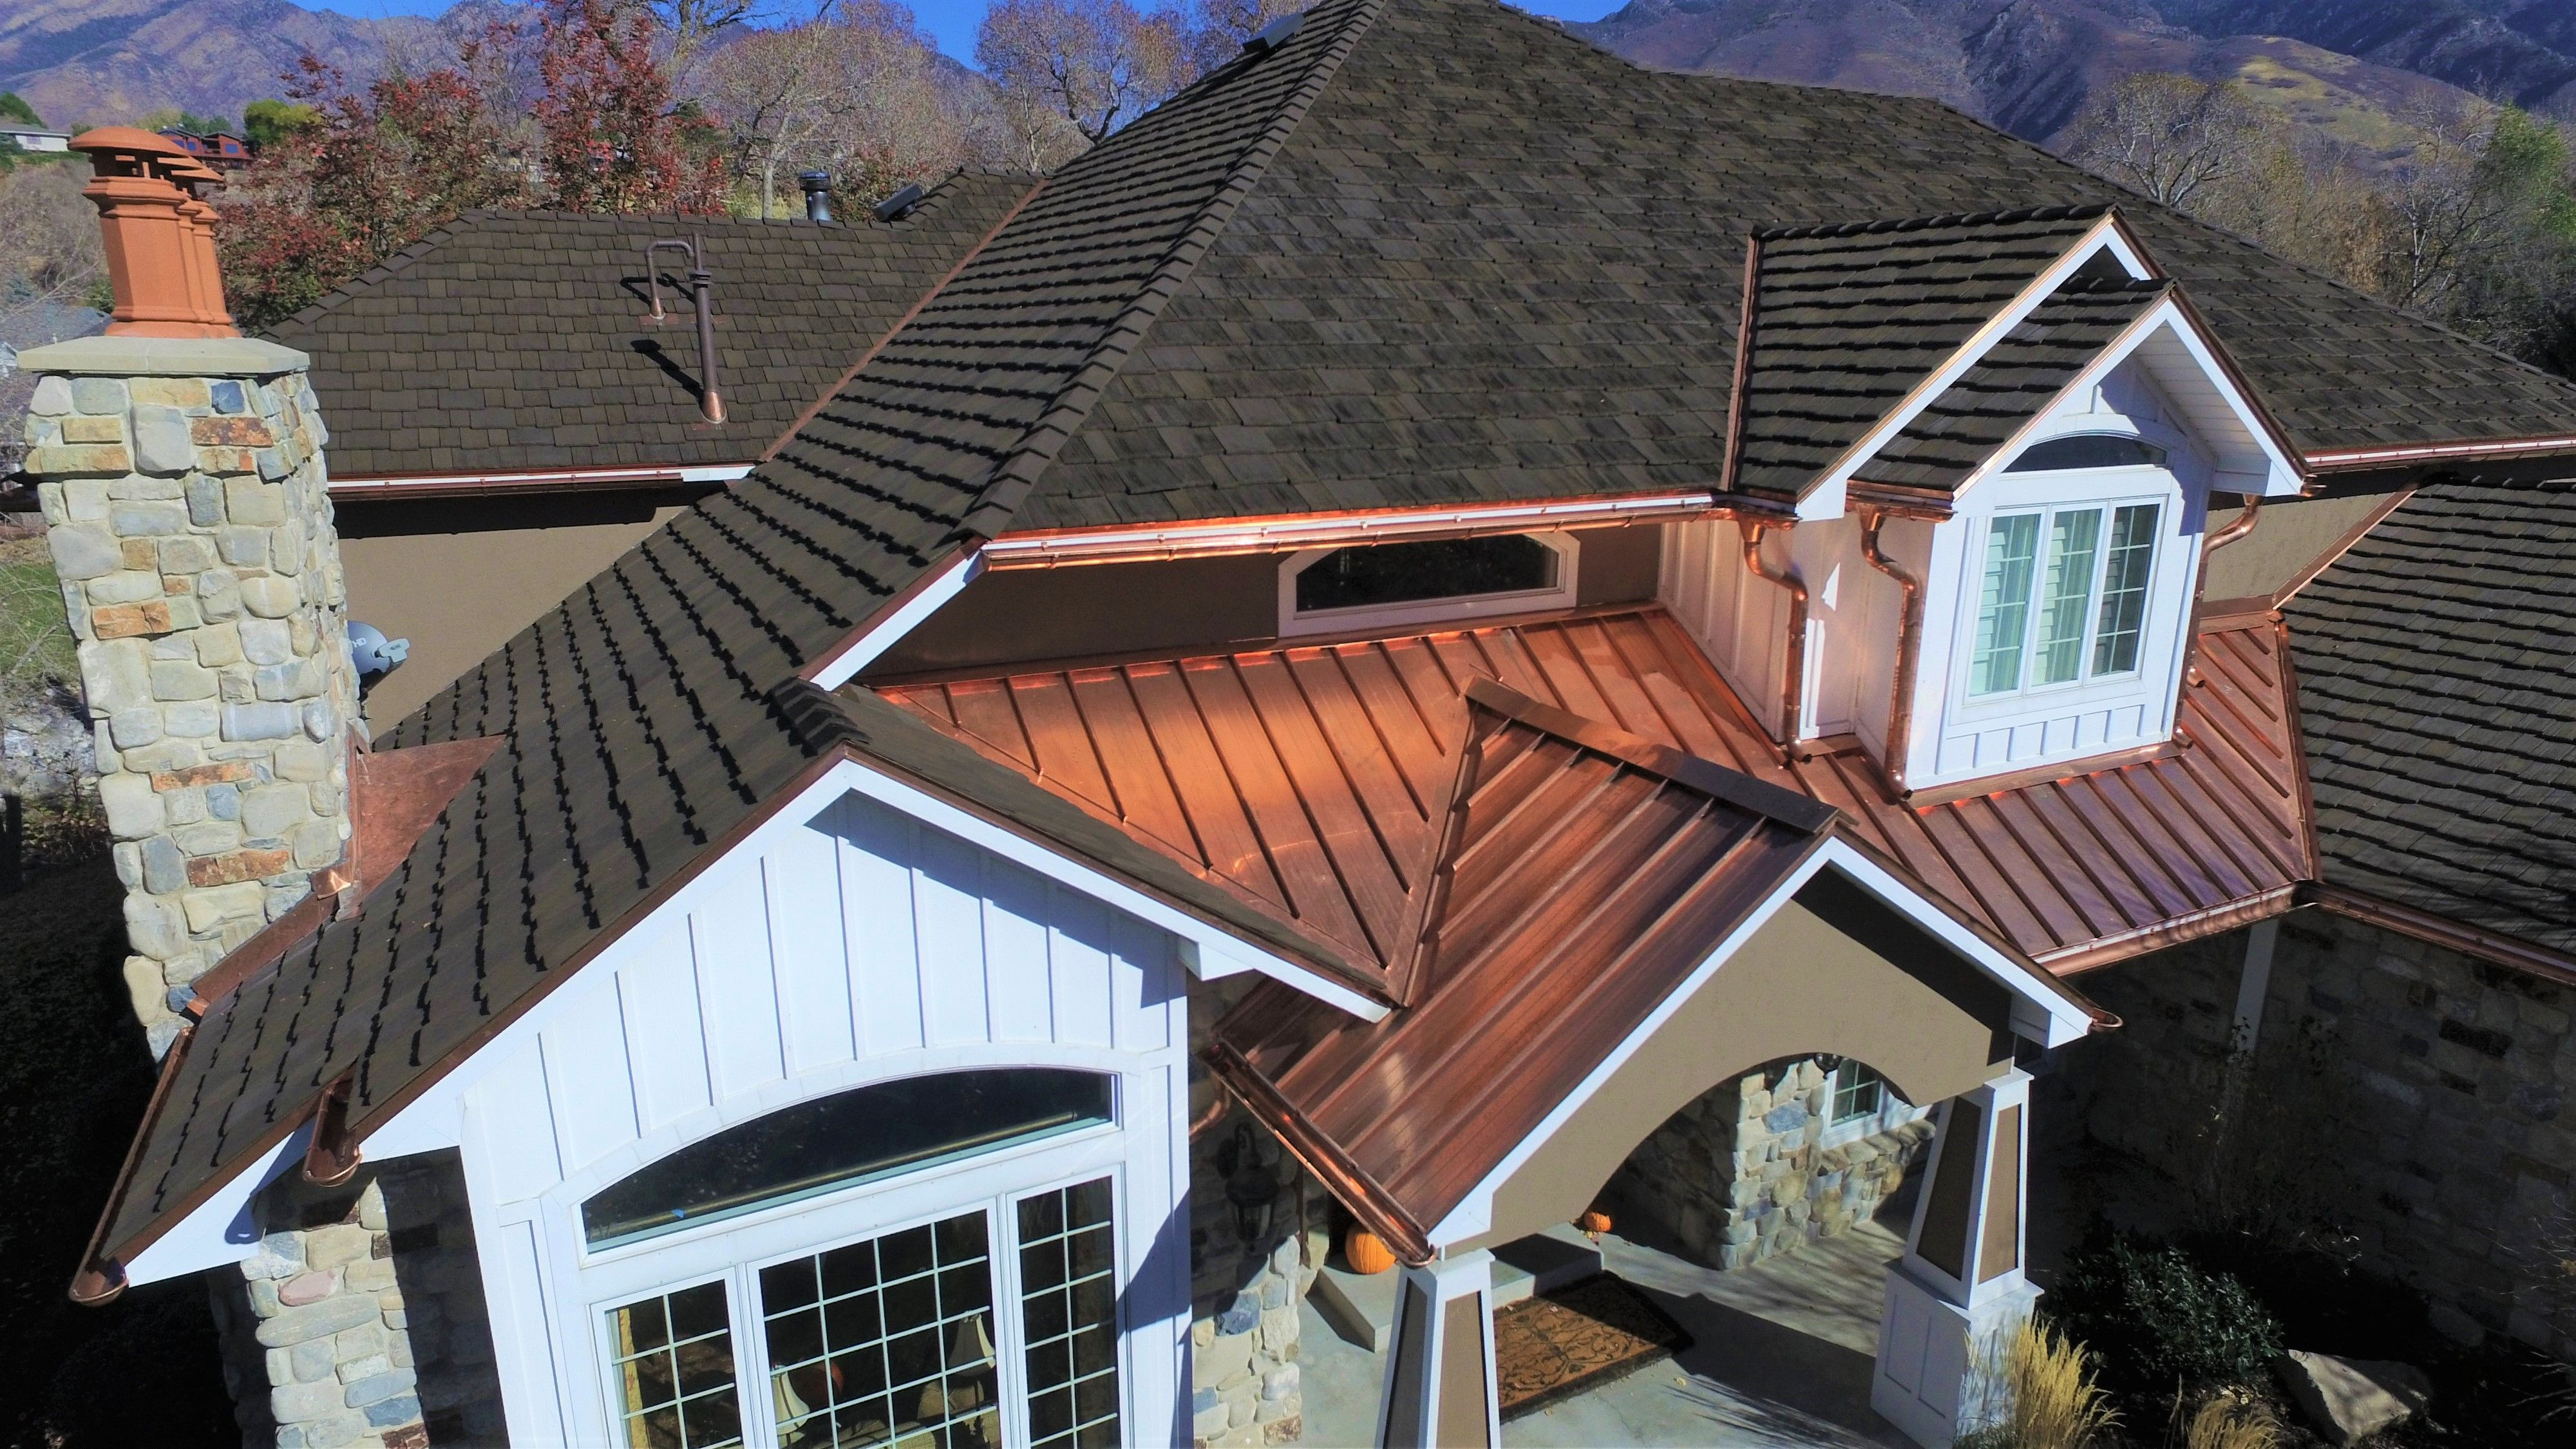 8 Roofing Industry Trends To Watch For In 2020 In 2020 Cool Roof Industrial Trend Roofing